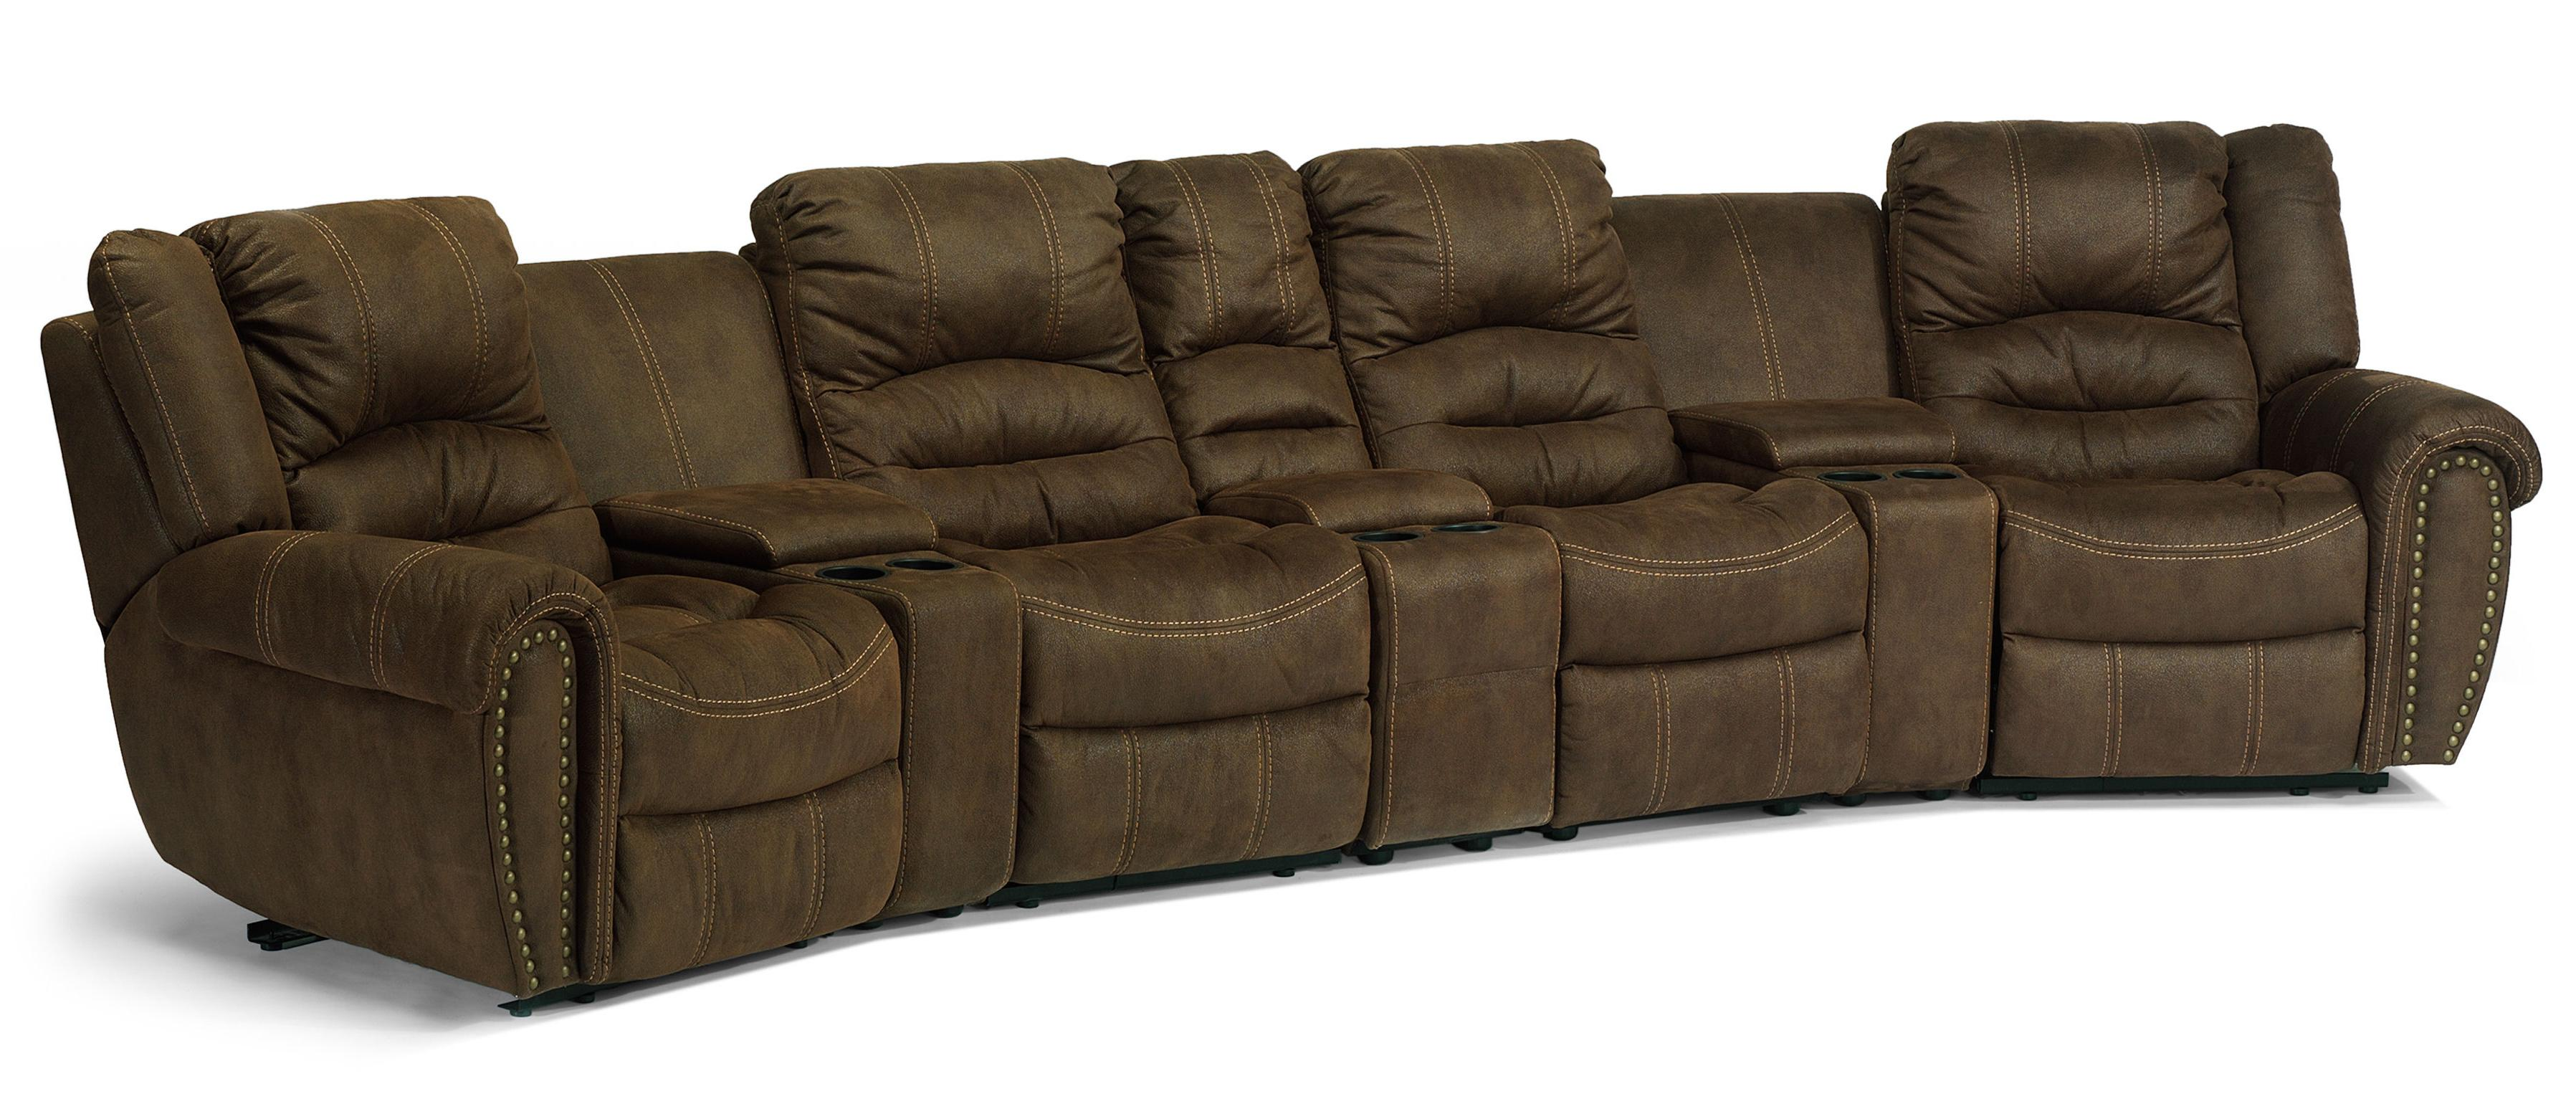 Flexsteel latitudes new town curved reclining sectional sofa with storage consoles olinde 39 s Loveseats with console